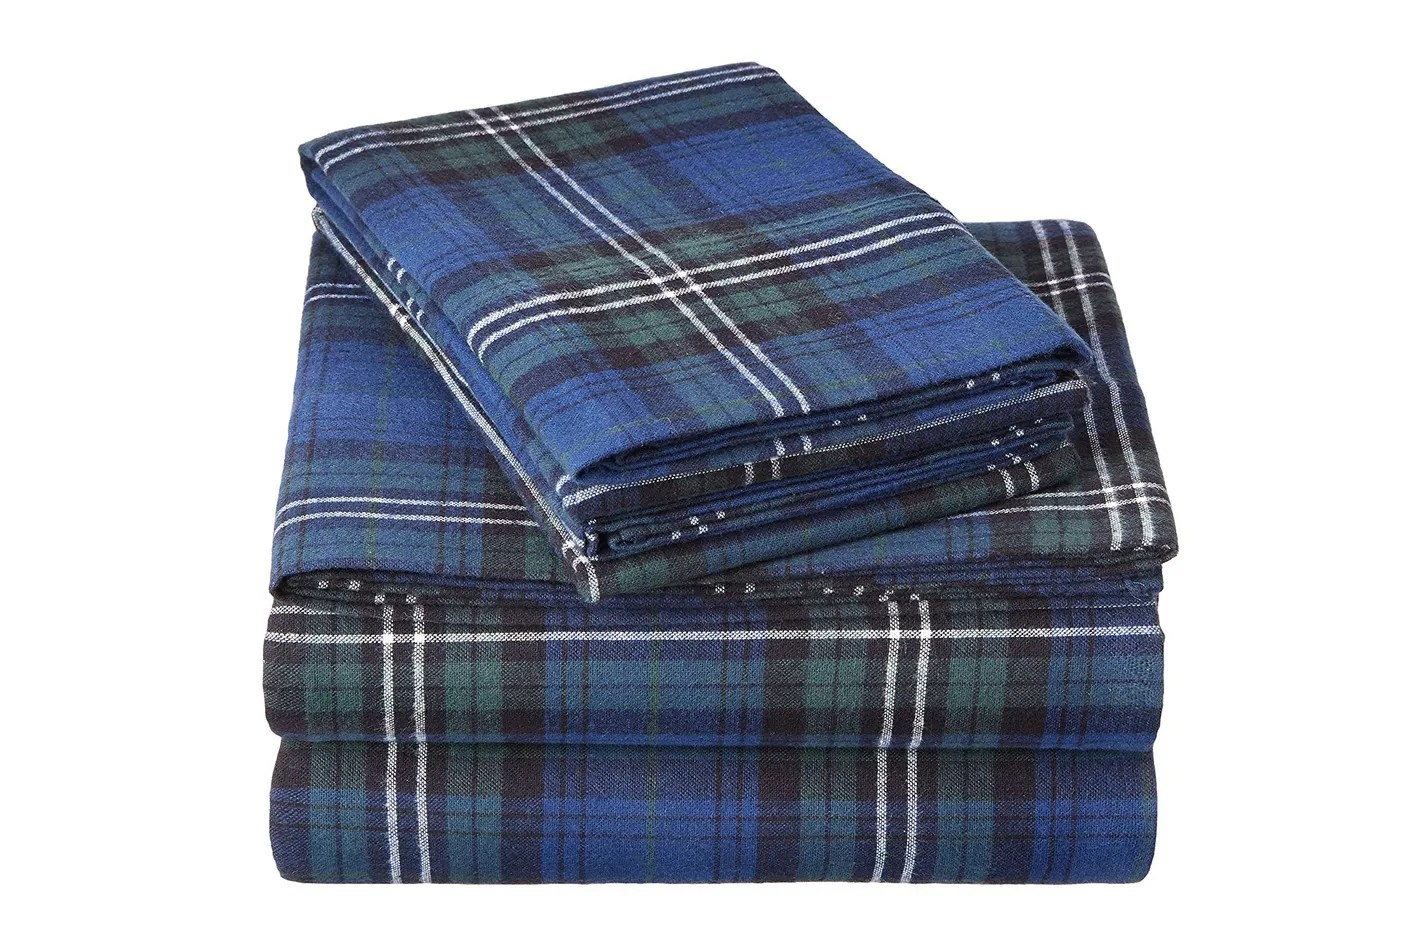 Popular Pinzon Gram Plaid Velvet Flannel Sheet Set Bed Sheets Egyptian Cotton Flannel Sheets 2018 Flannel Sheet Sets Queen Flannel Sheet Sets Massage Tables baby Flannel Sheet Sets